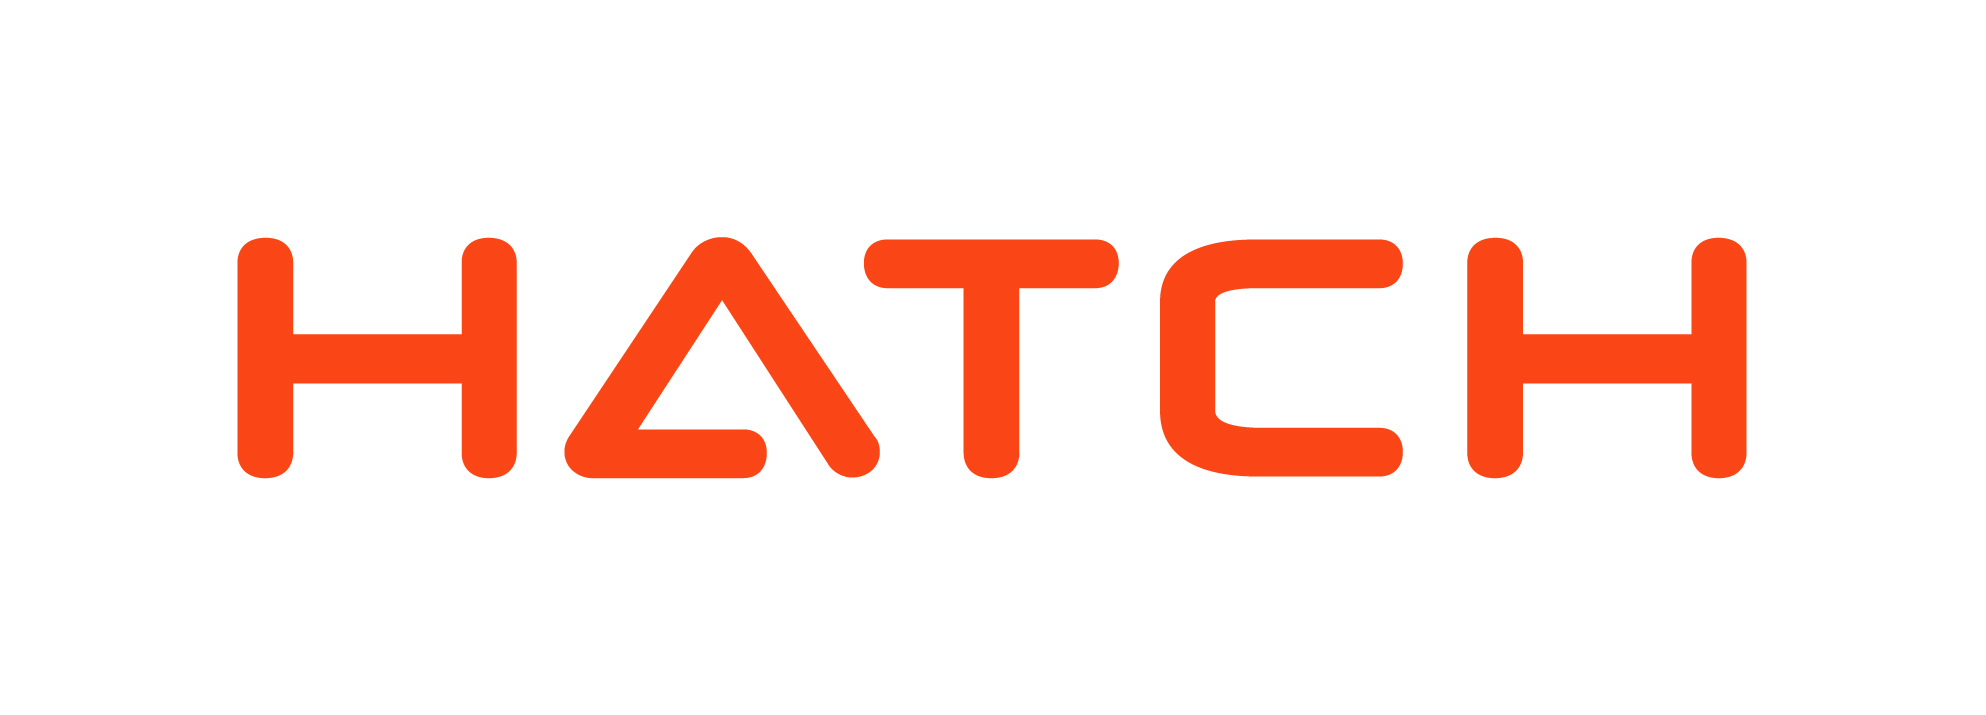 Hatch_Logo_Colour_RGB.jpg